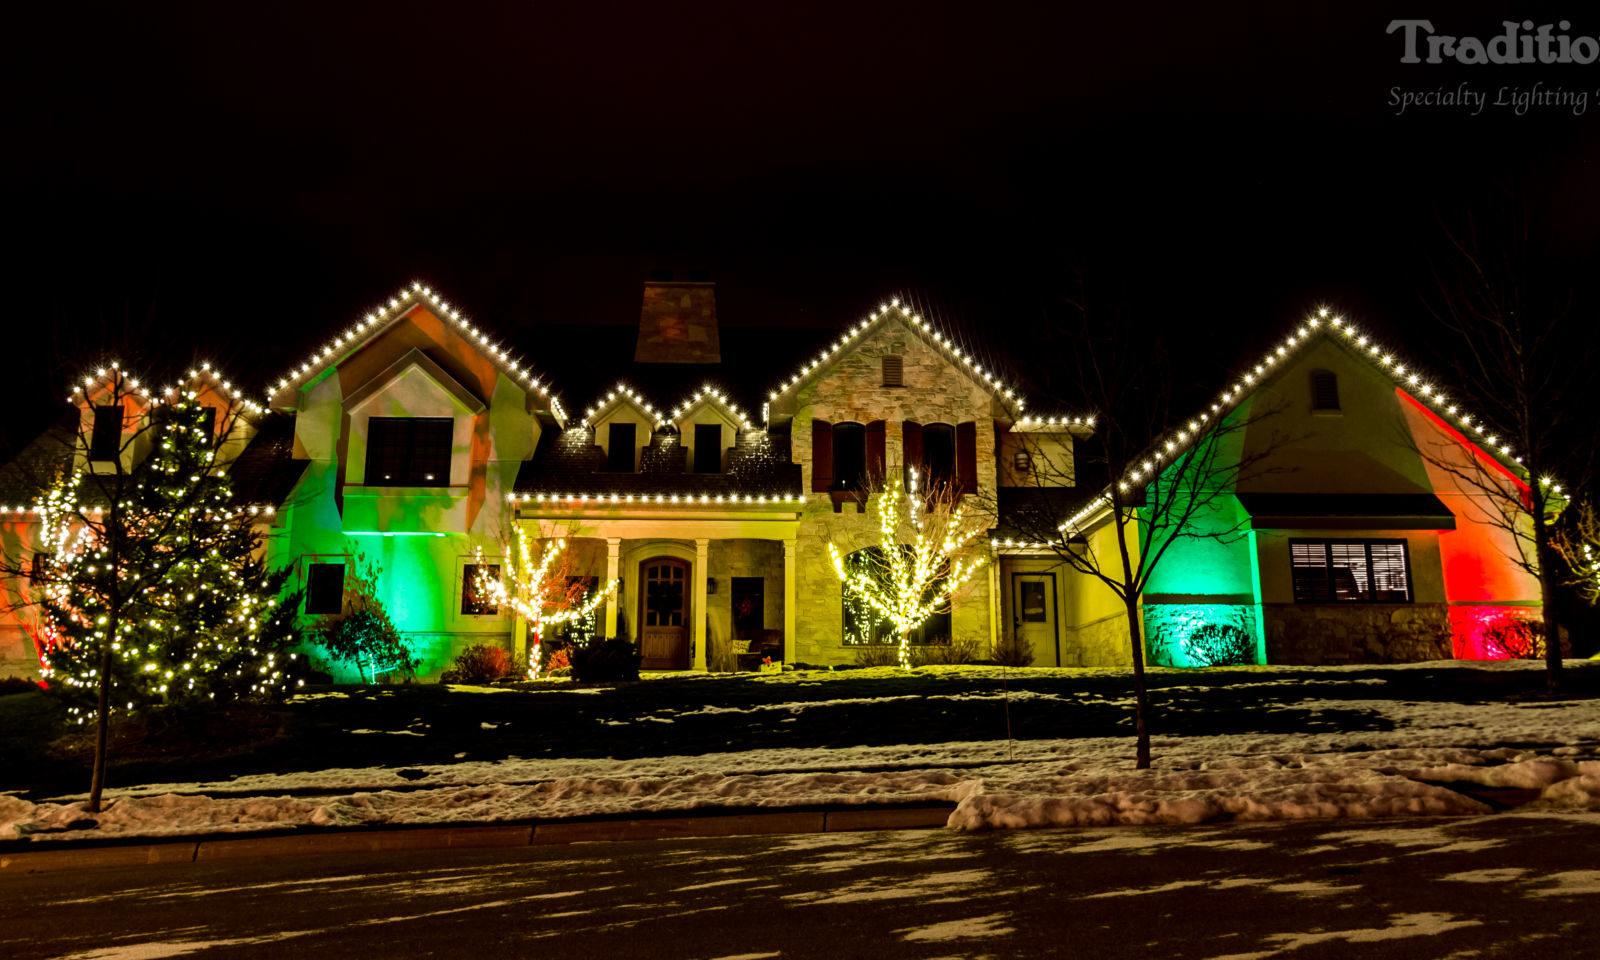 Is Your Home Holiday Light Ready?